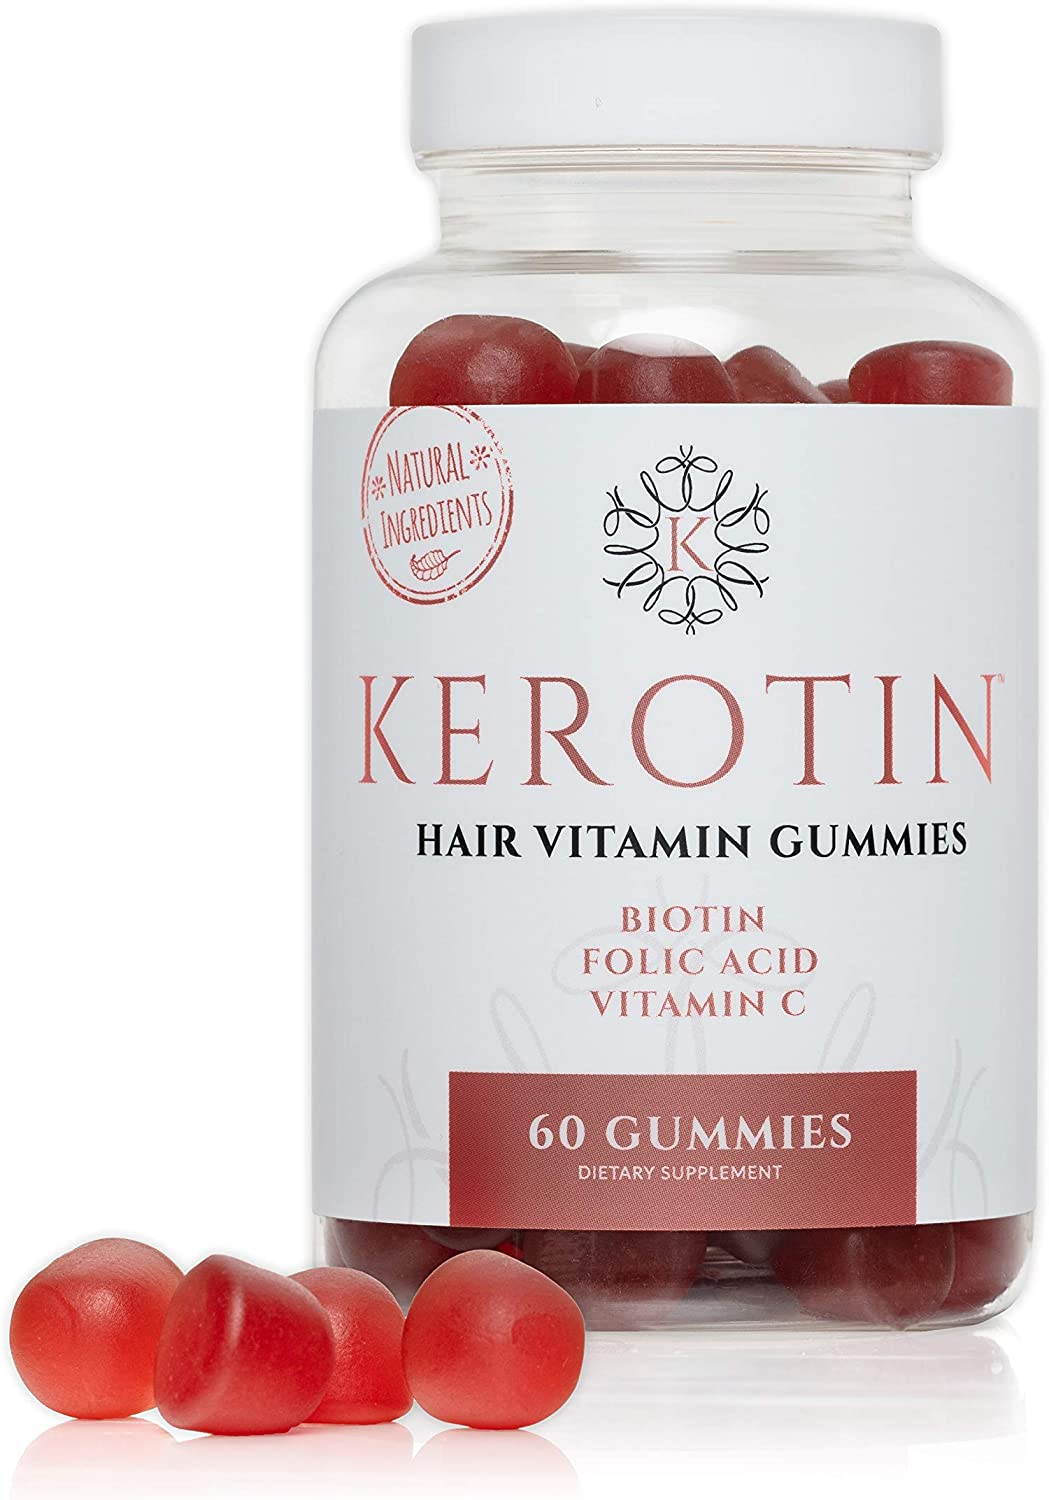 Kerotin Hair Growth Gummies - Vegetarian, Natural and 100% Made in The US - for Thinning Hair and Faster Growth - Berry Flavored, Contains Biotin and Essential Vitamins